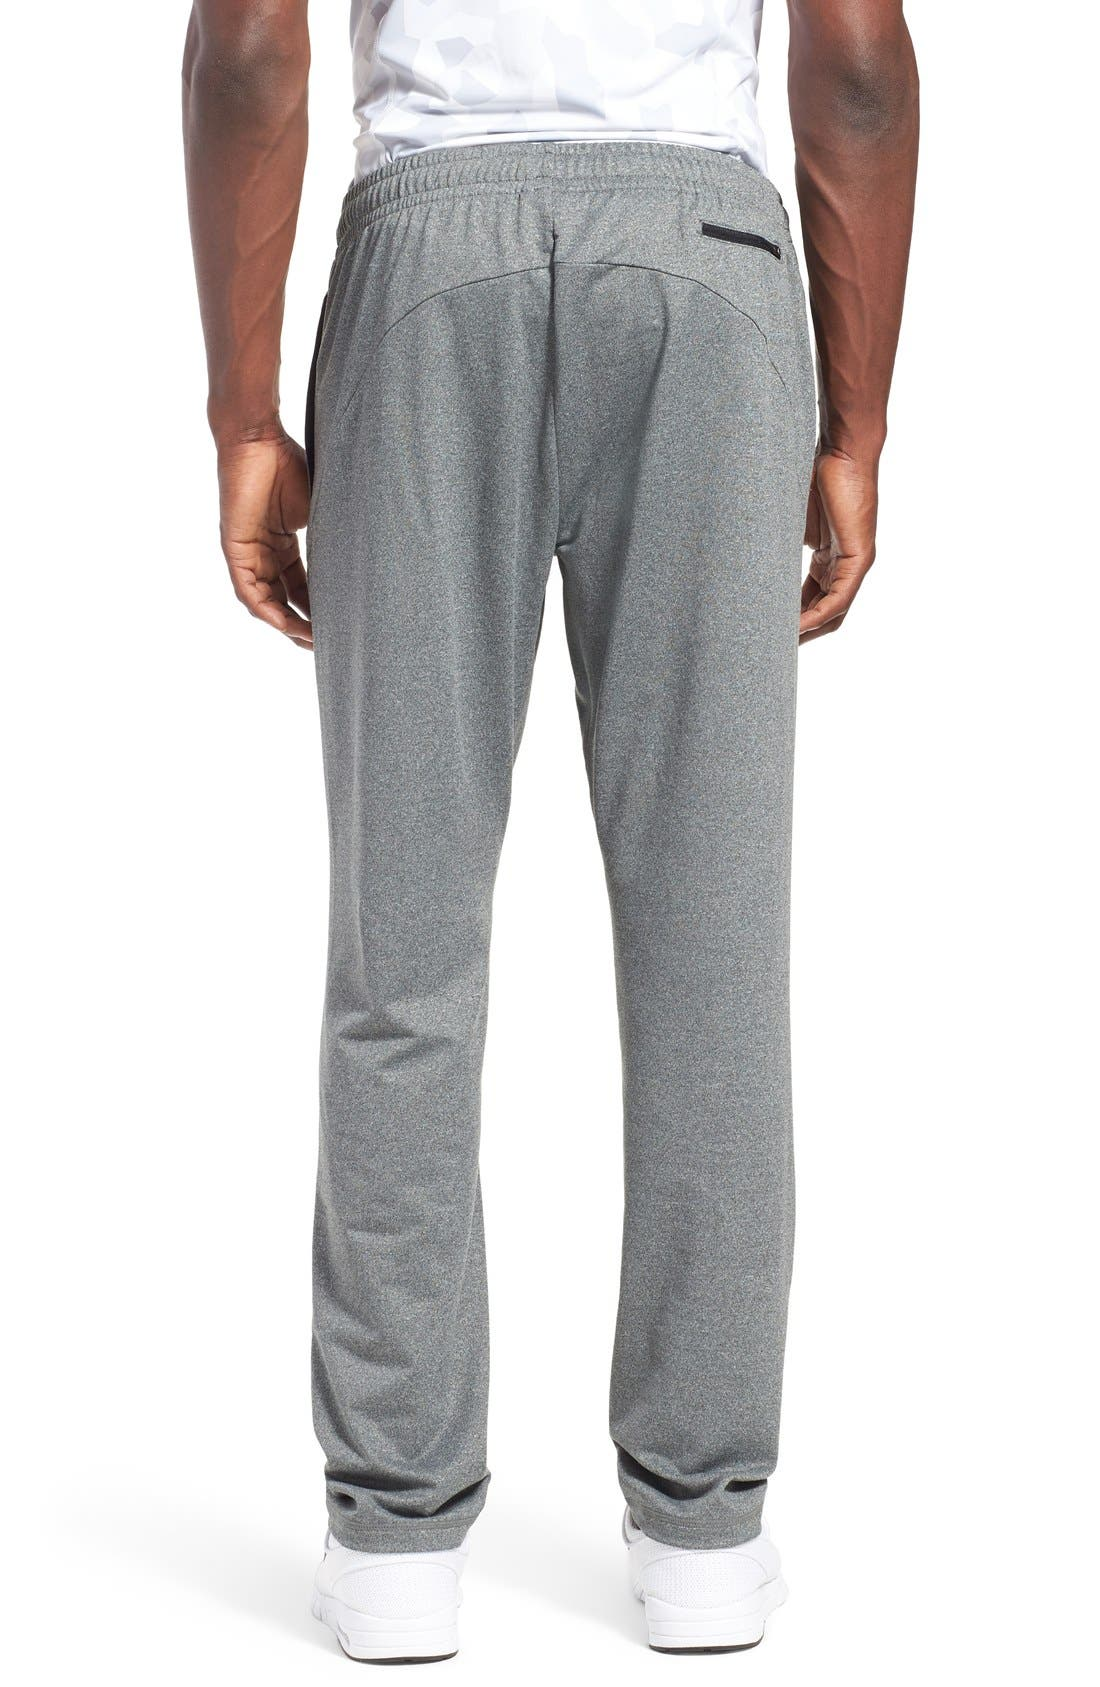 'Pyrite' Tapered Fit Knit Athletic Pants,                             Alternate thumbnail 3, color,                             GREY OBSIDIAN